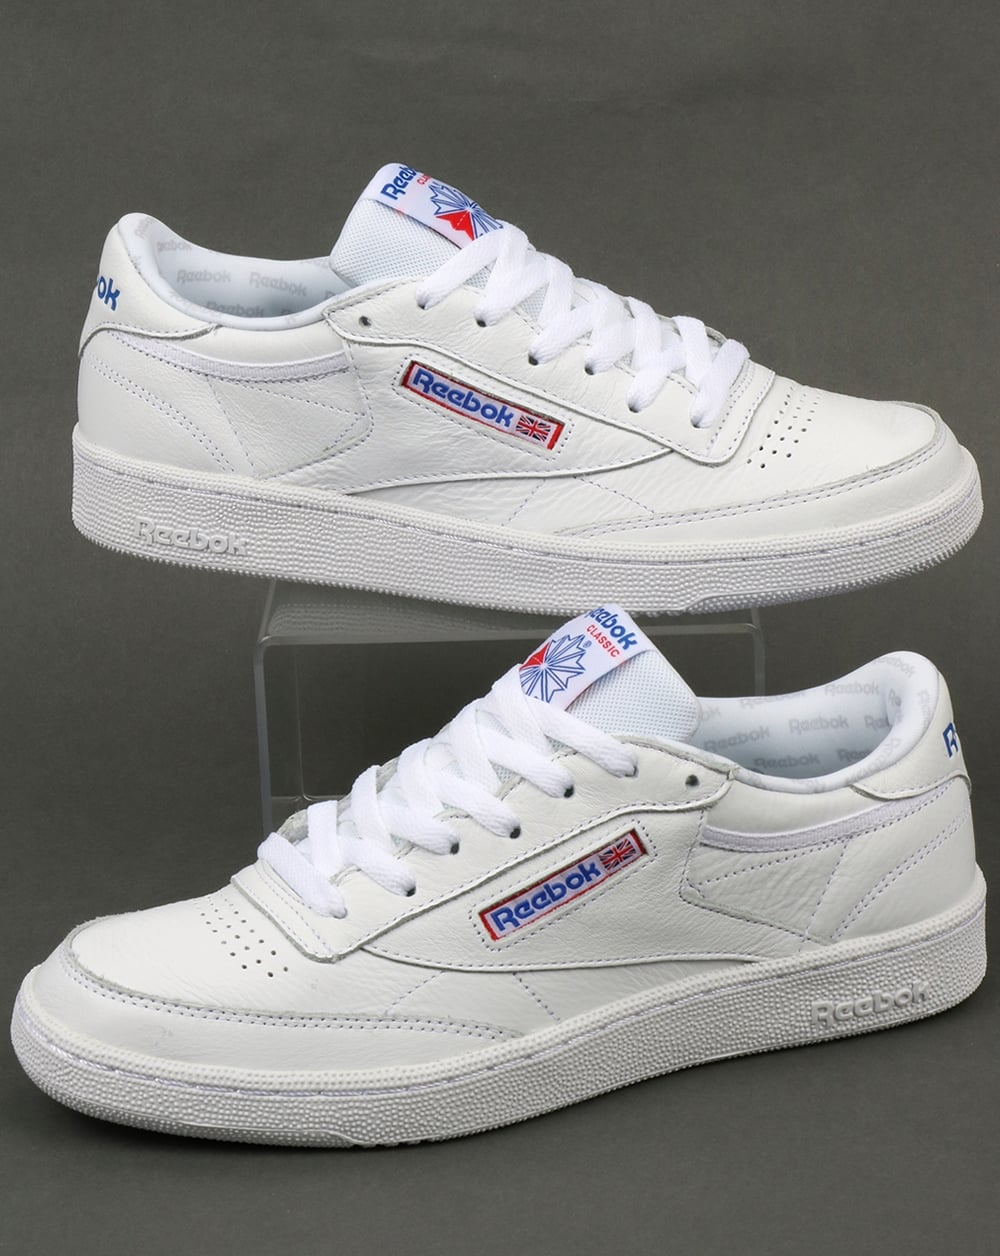 Reebok Reebok Club C 85 SO Trainers White Solid Grey 1bd366512